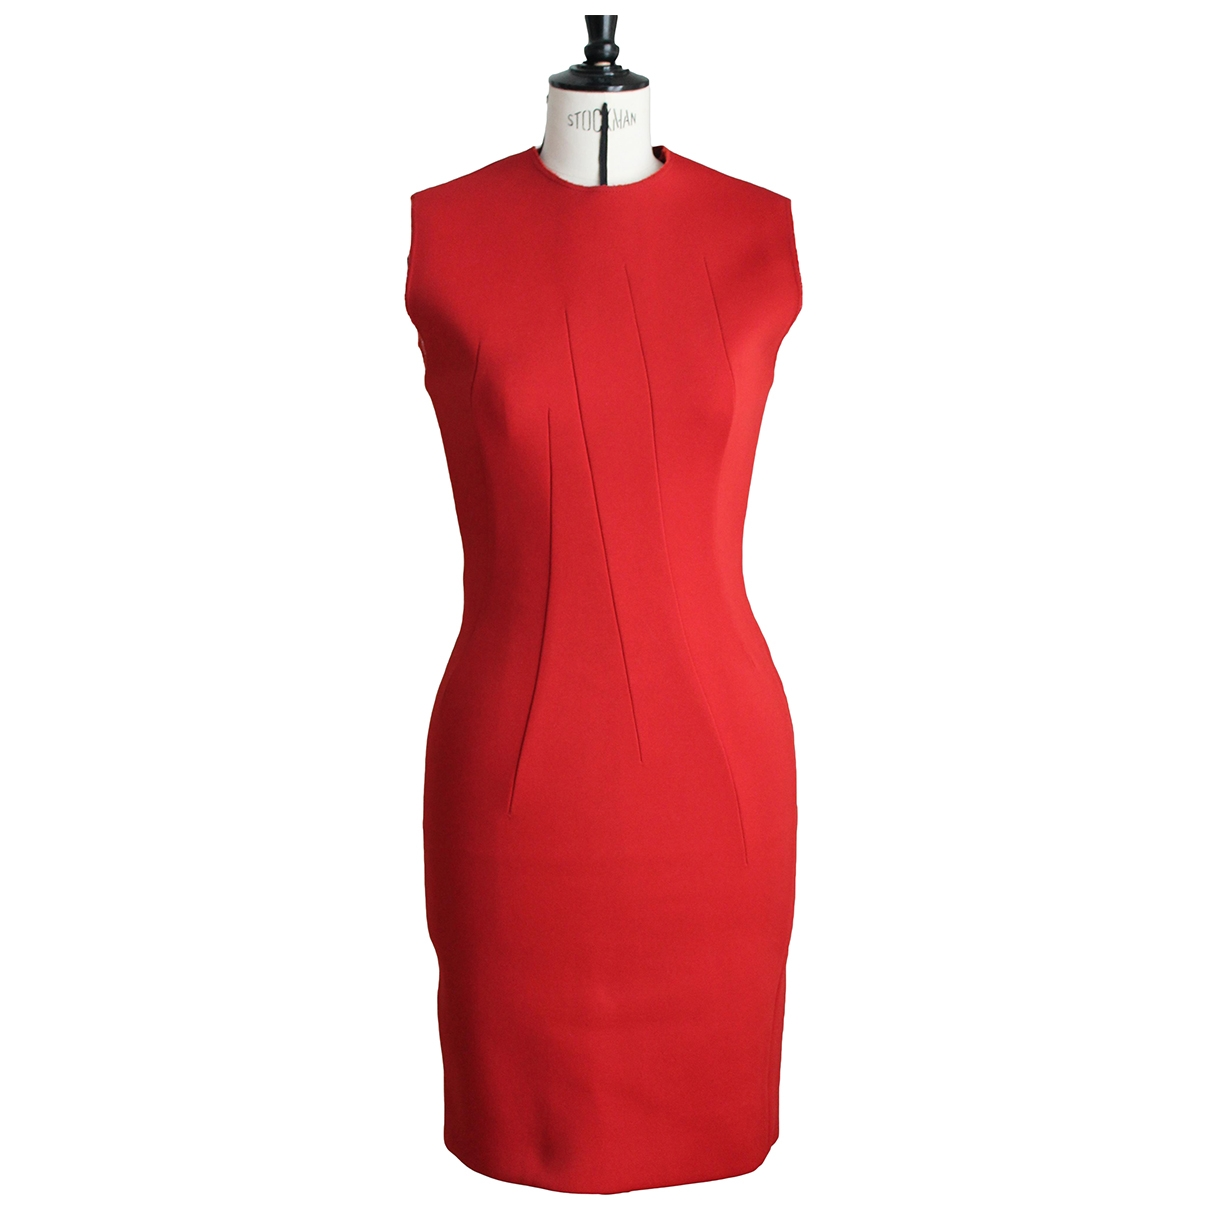 Lanvin \N Red dress for Women 36 FR